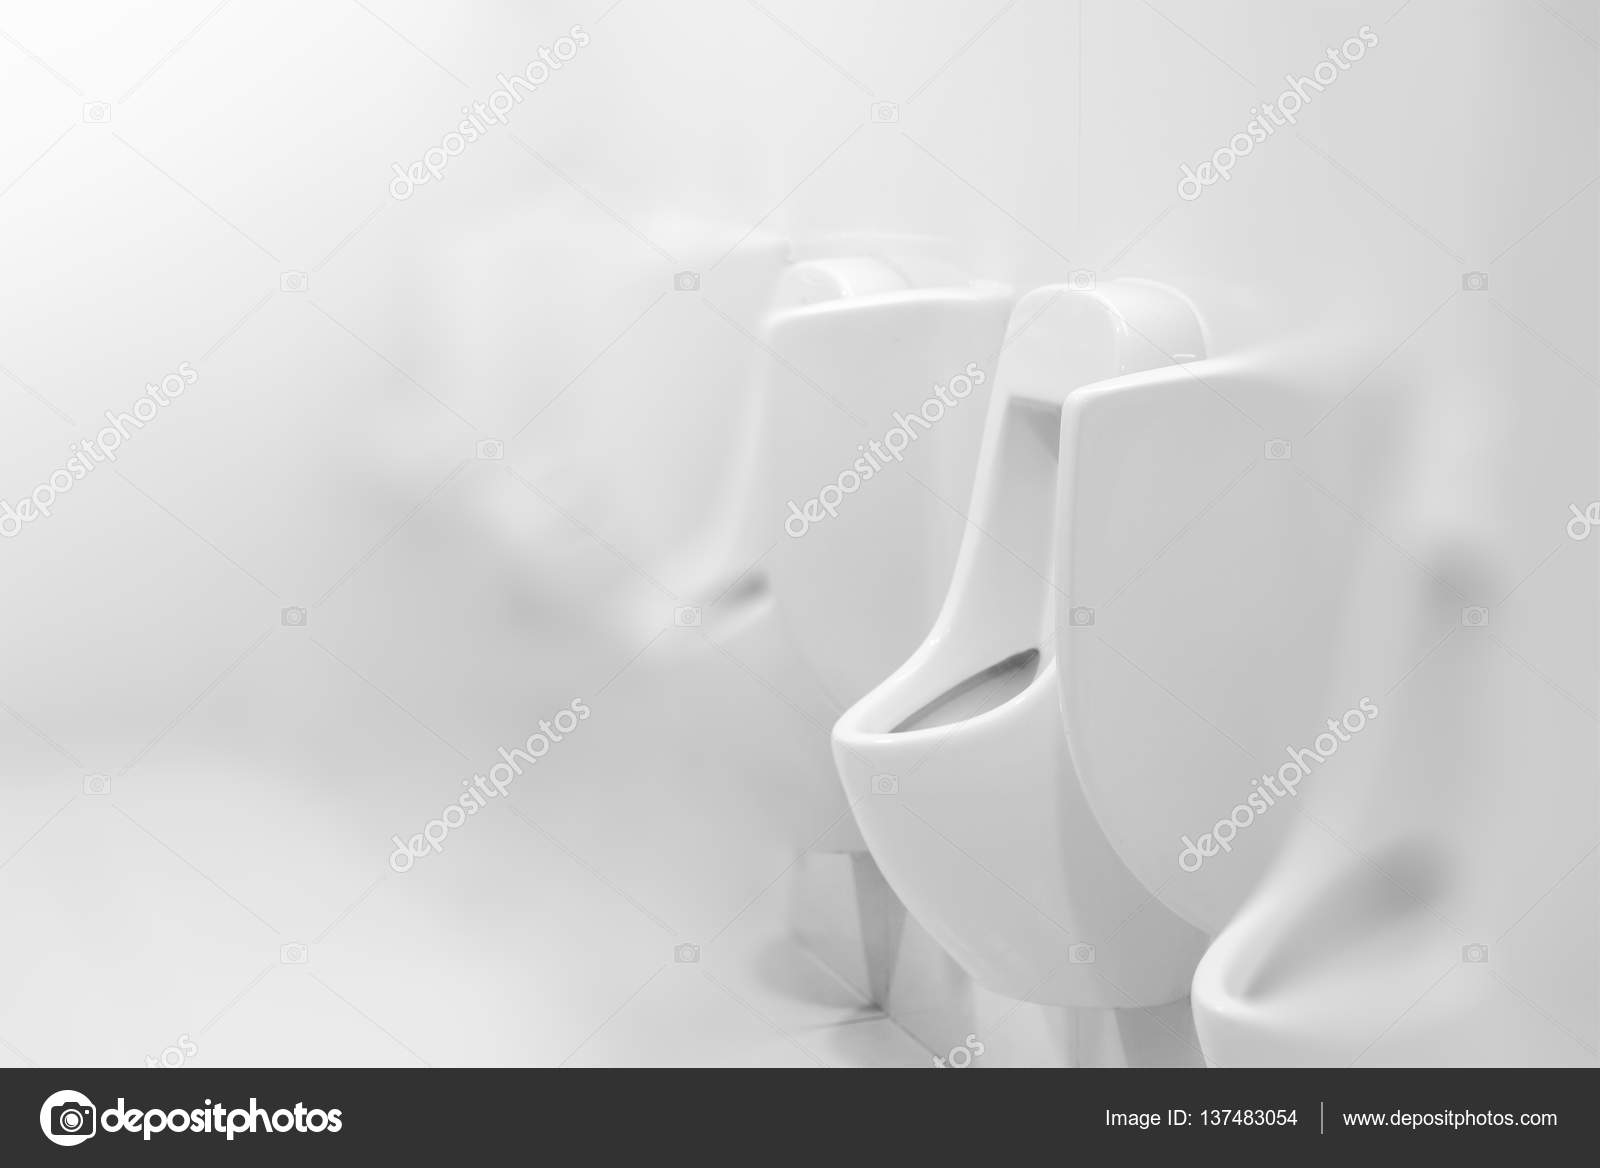 Urinoirs in witte openbare toilet of toilet interieur design